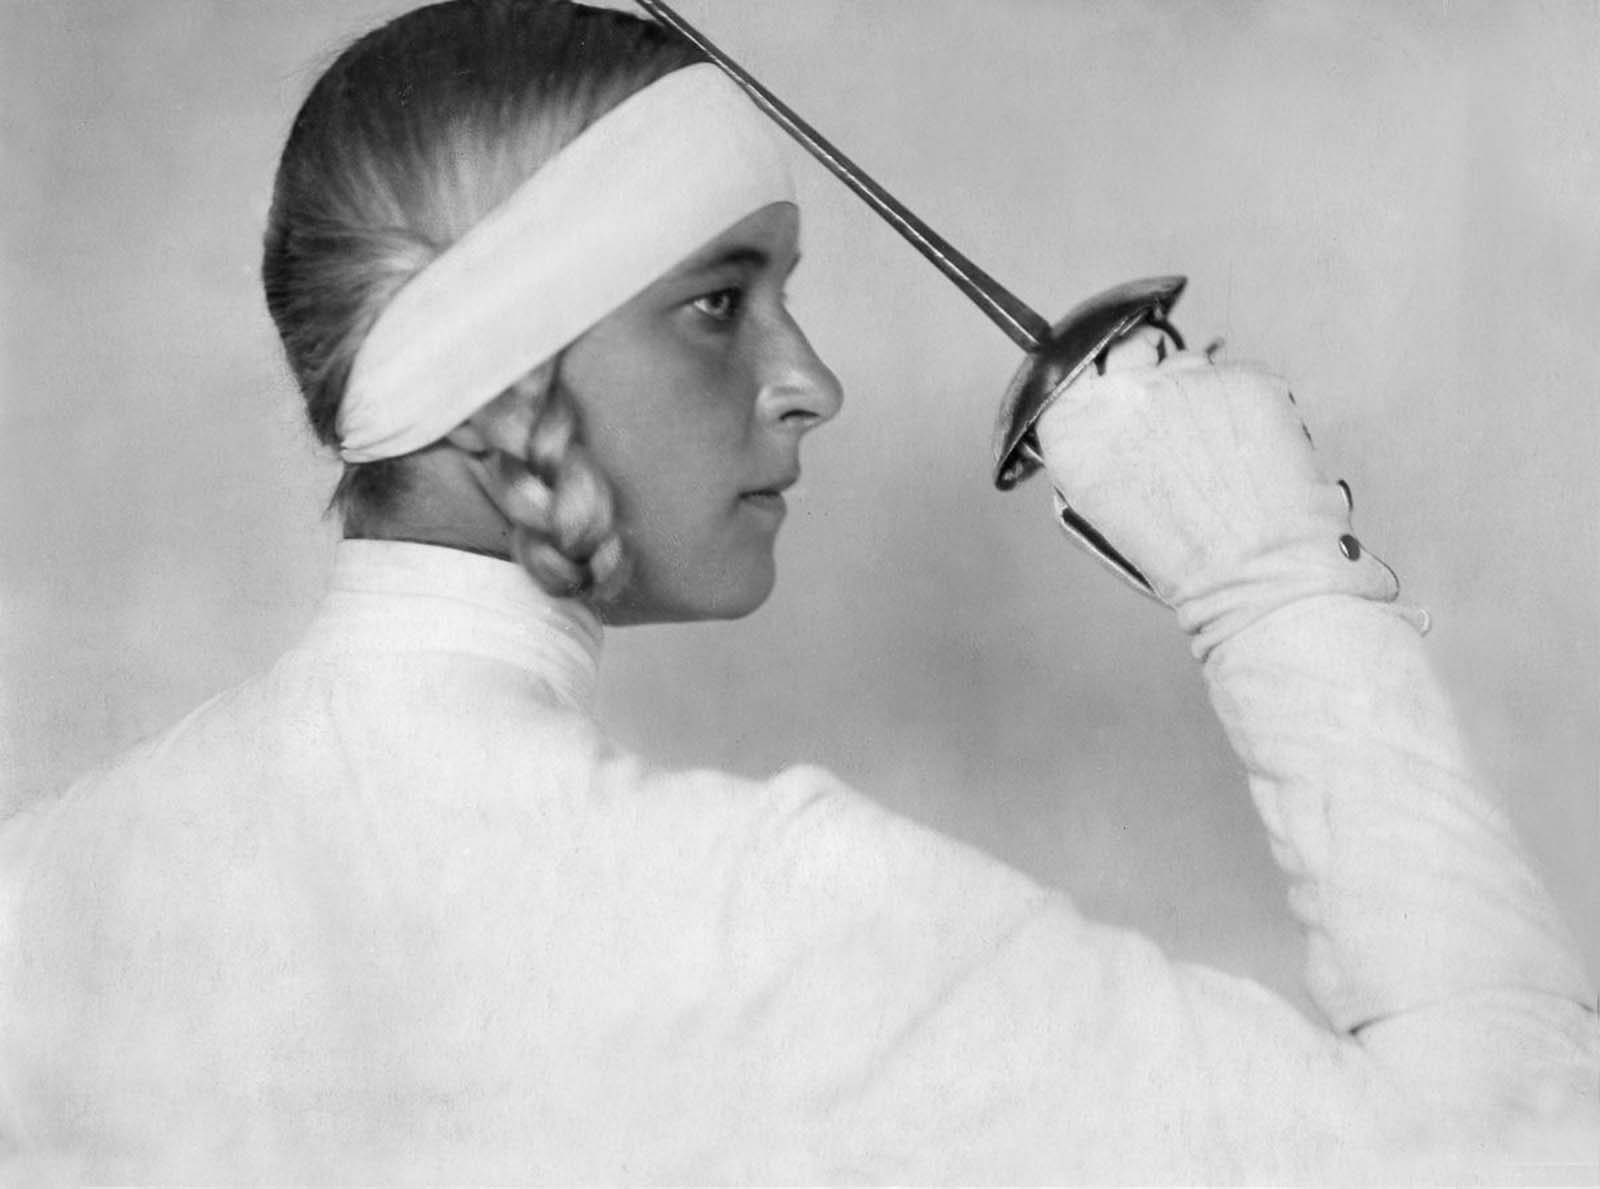 Mayer had been called the greatest female fencer of all time, and was named by Sports Illustrated as one of the Top 100 Female Athletes of the 20th Century, but her legacy remains clouded.